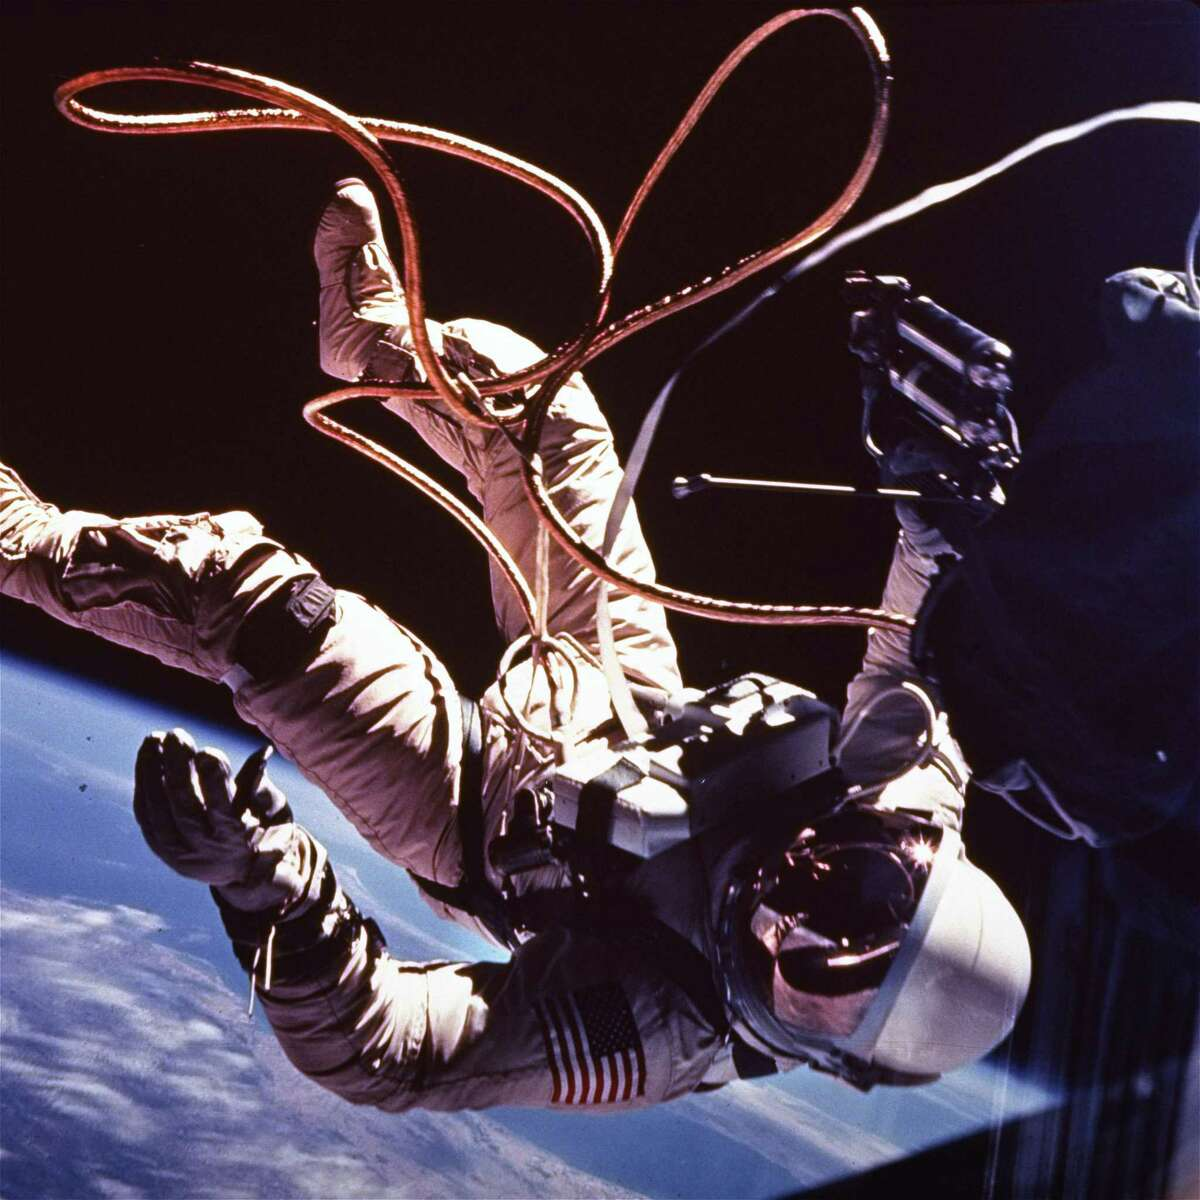 In summer 1965, San Antonio native Ed White was the first American spacewalker. More firsts are planned for summer 2021.